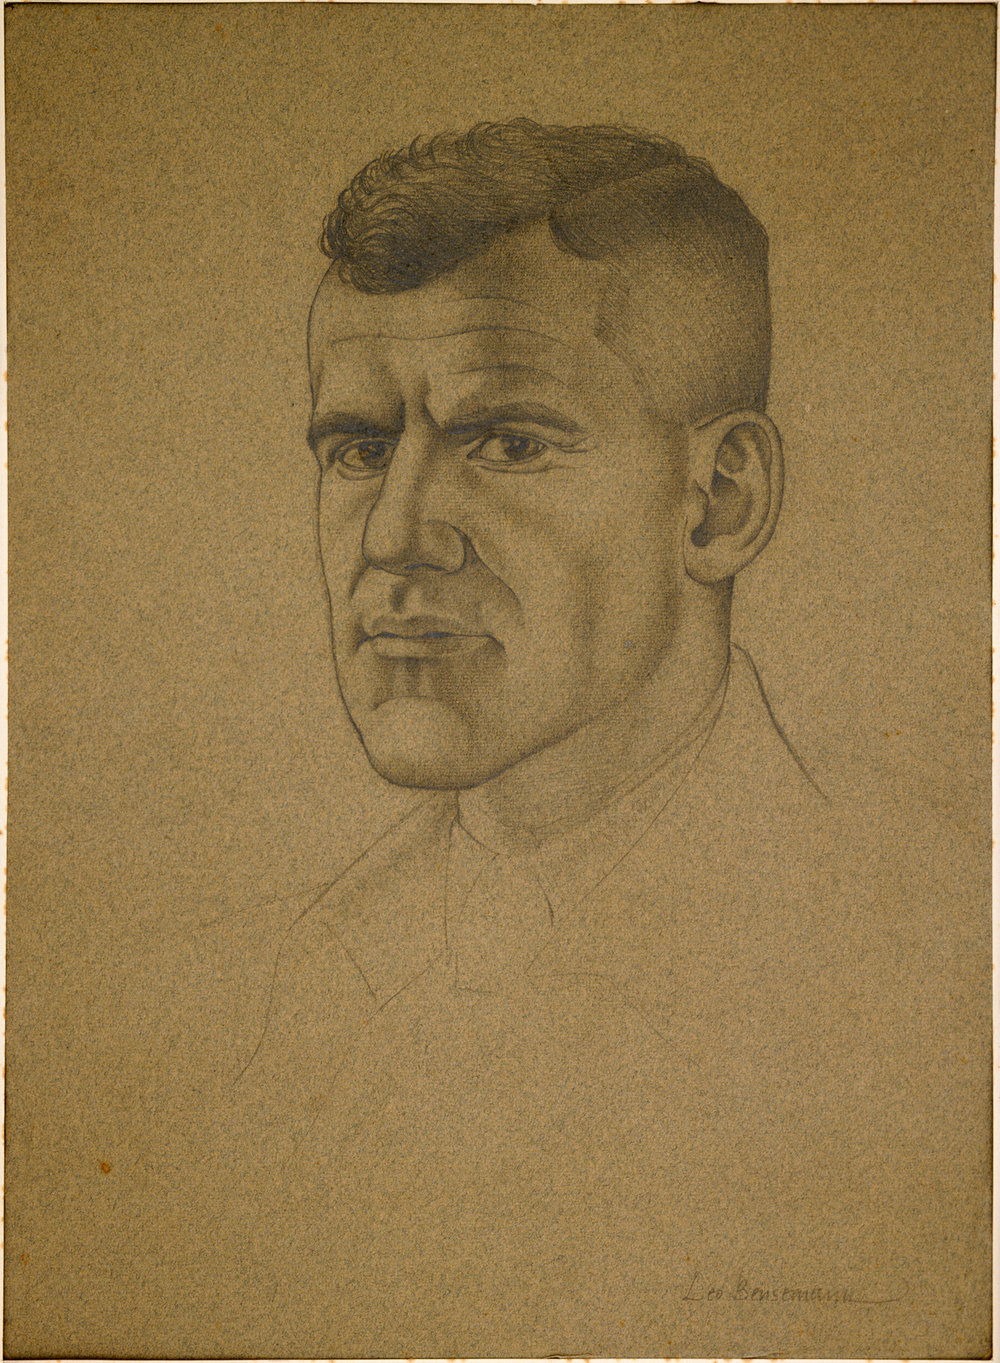 Figure 5: Portraiture sketch of Lieutenant Keith Elliott by Leo Bensemann. Source: Archives New Zealand, War Art, ref: AAAC 898 NCWA Q552. URL: http://warart.archives.govt.nz/node/616